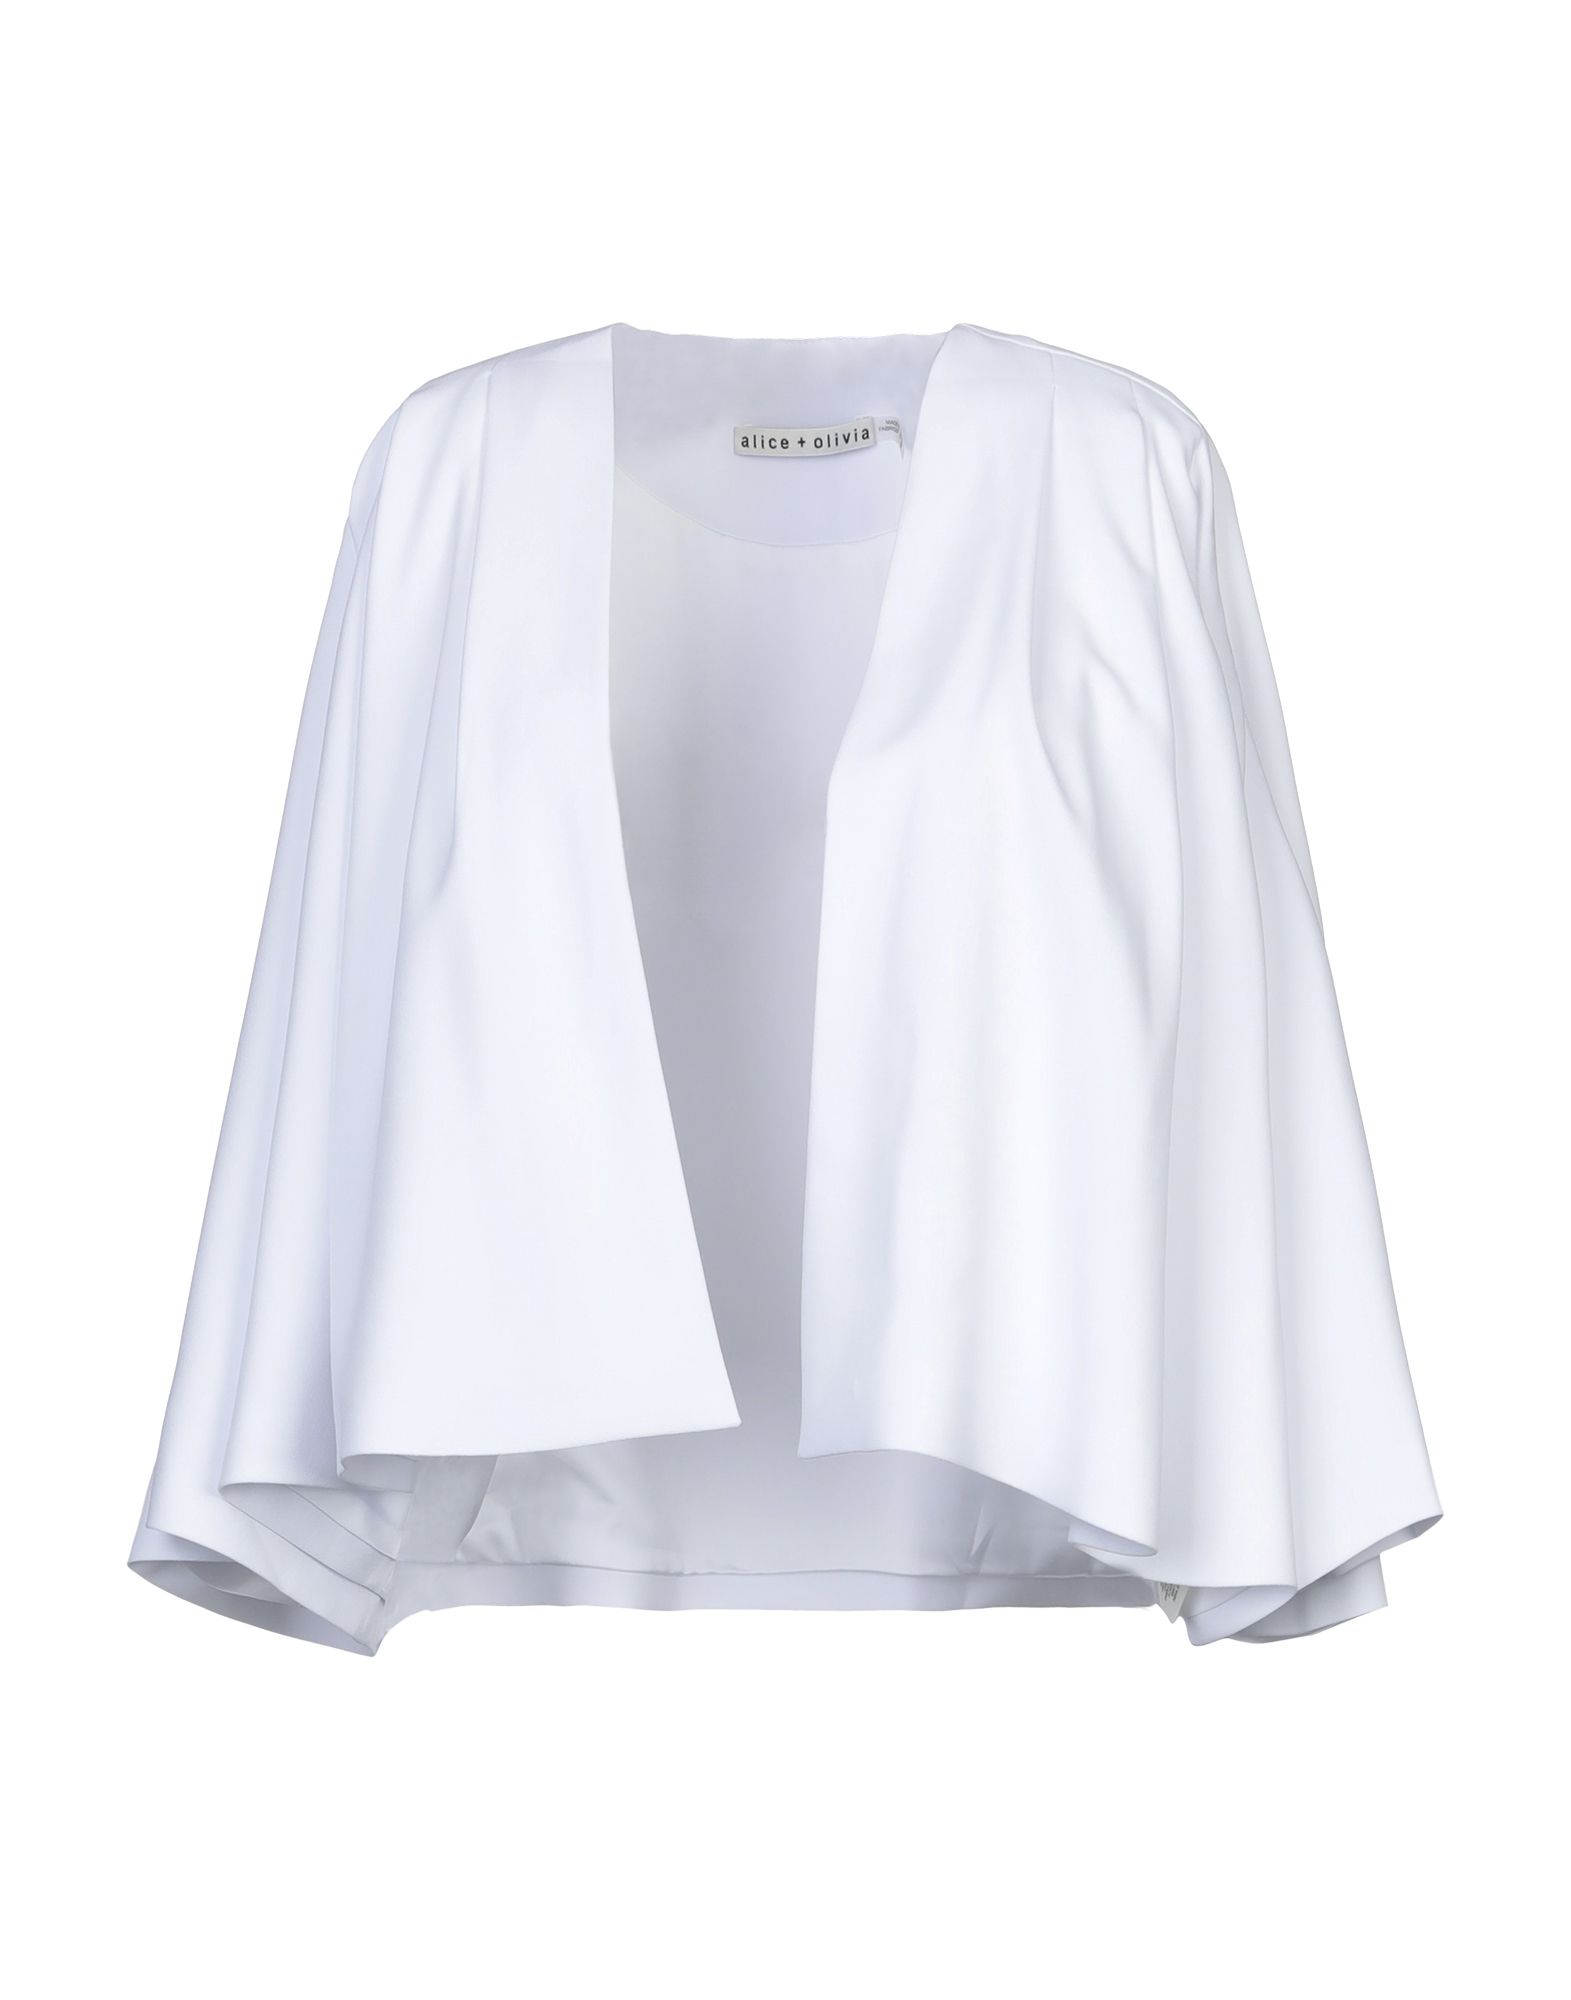 ALICE + OLIVIA Suit jackets. crepe, no appliqués, basic solid color, no pockets, deep neckline, single-breasted, 3/4 length sleeves, fully lined. 100% Polyester